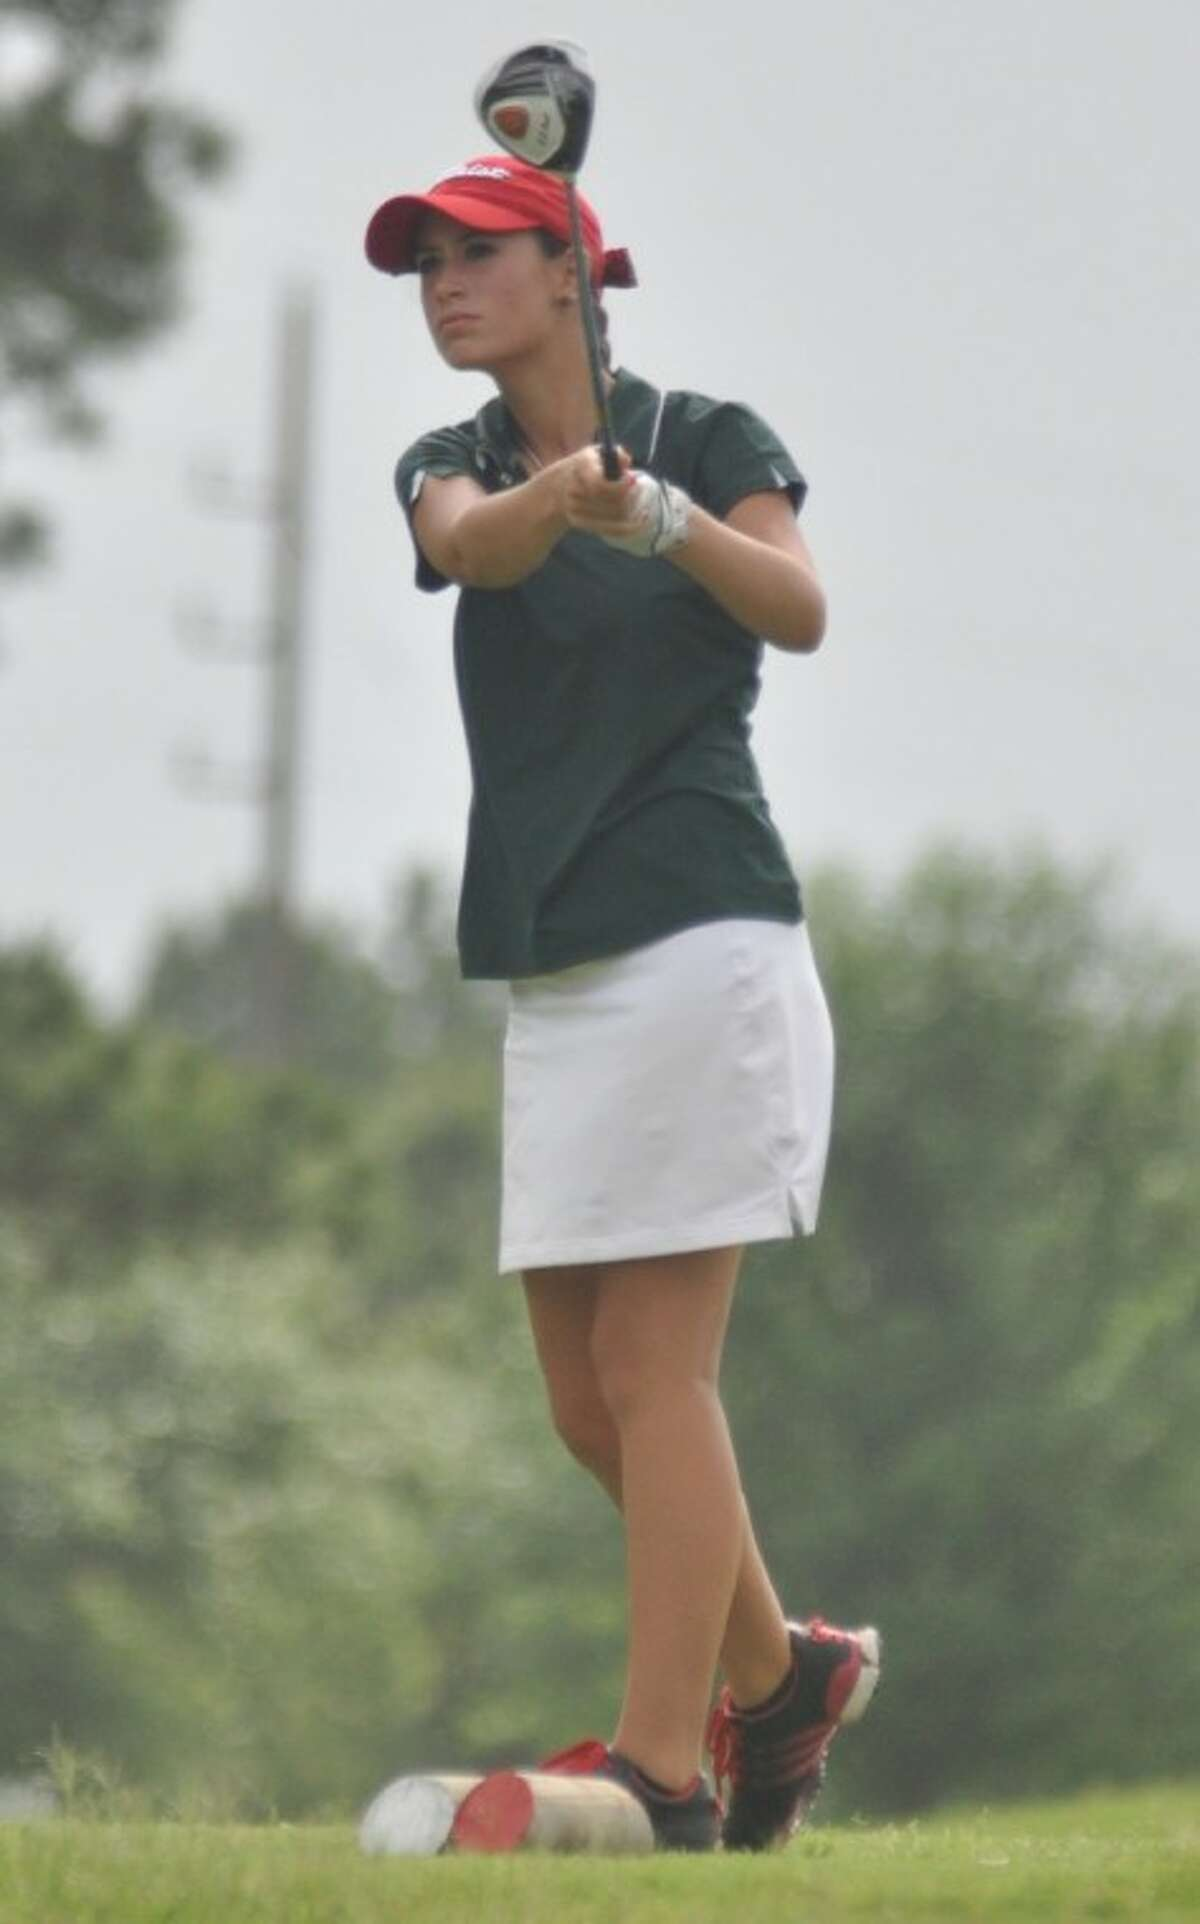 The Woodlands' Cheyenne Knight hits a tee shot during the District 14-5A girls golf tournament at Oakhurst Golf Club in Kingwood on Tuesday.